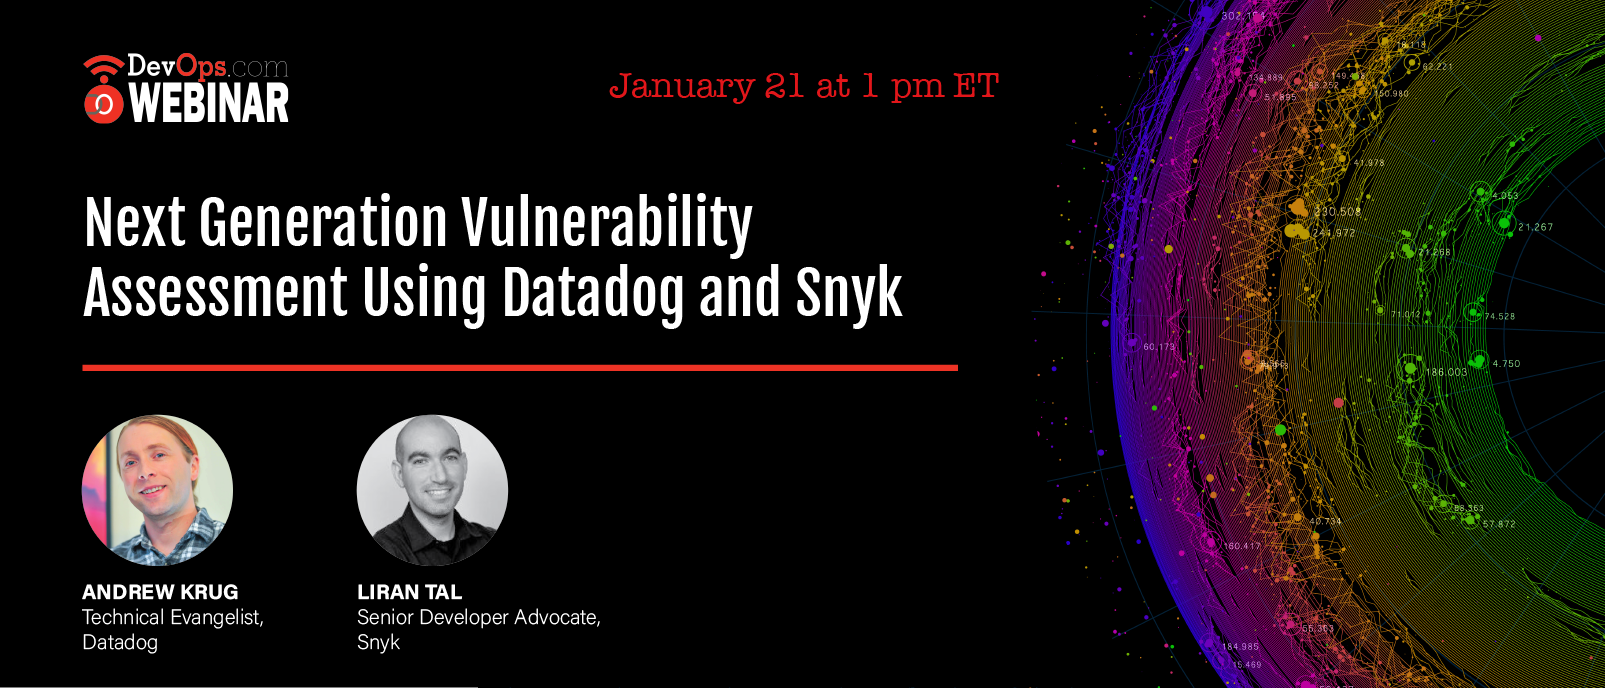 Next Generation Vulnerability Assessment Using Datadog and Snyk